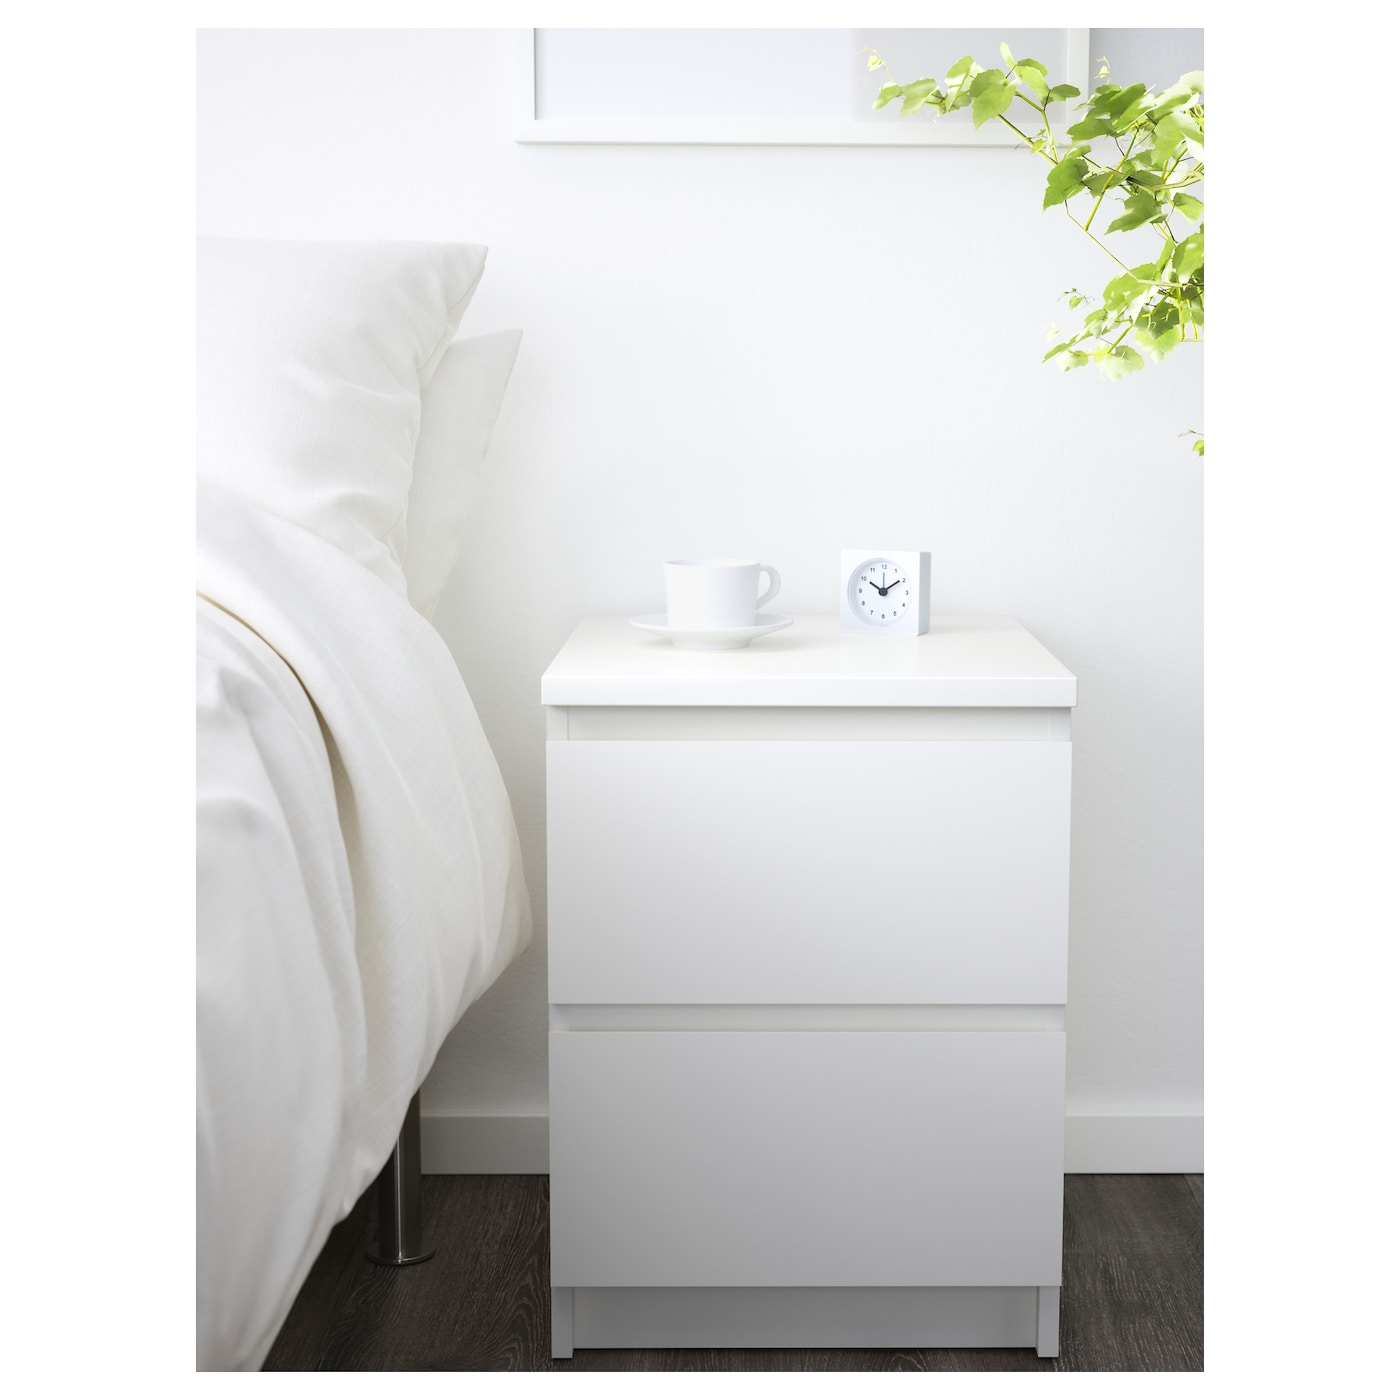 IKEA MALM chest of 2 drawers Can also be used as a bedside table. MALM Chest of 2 drawers White 40x55 cm   IKEA